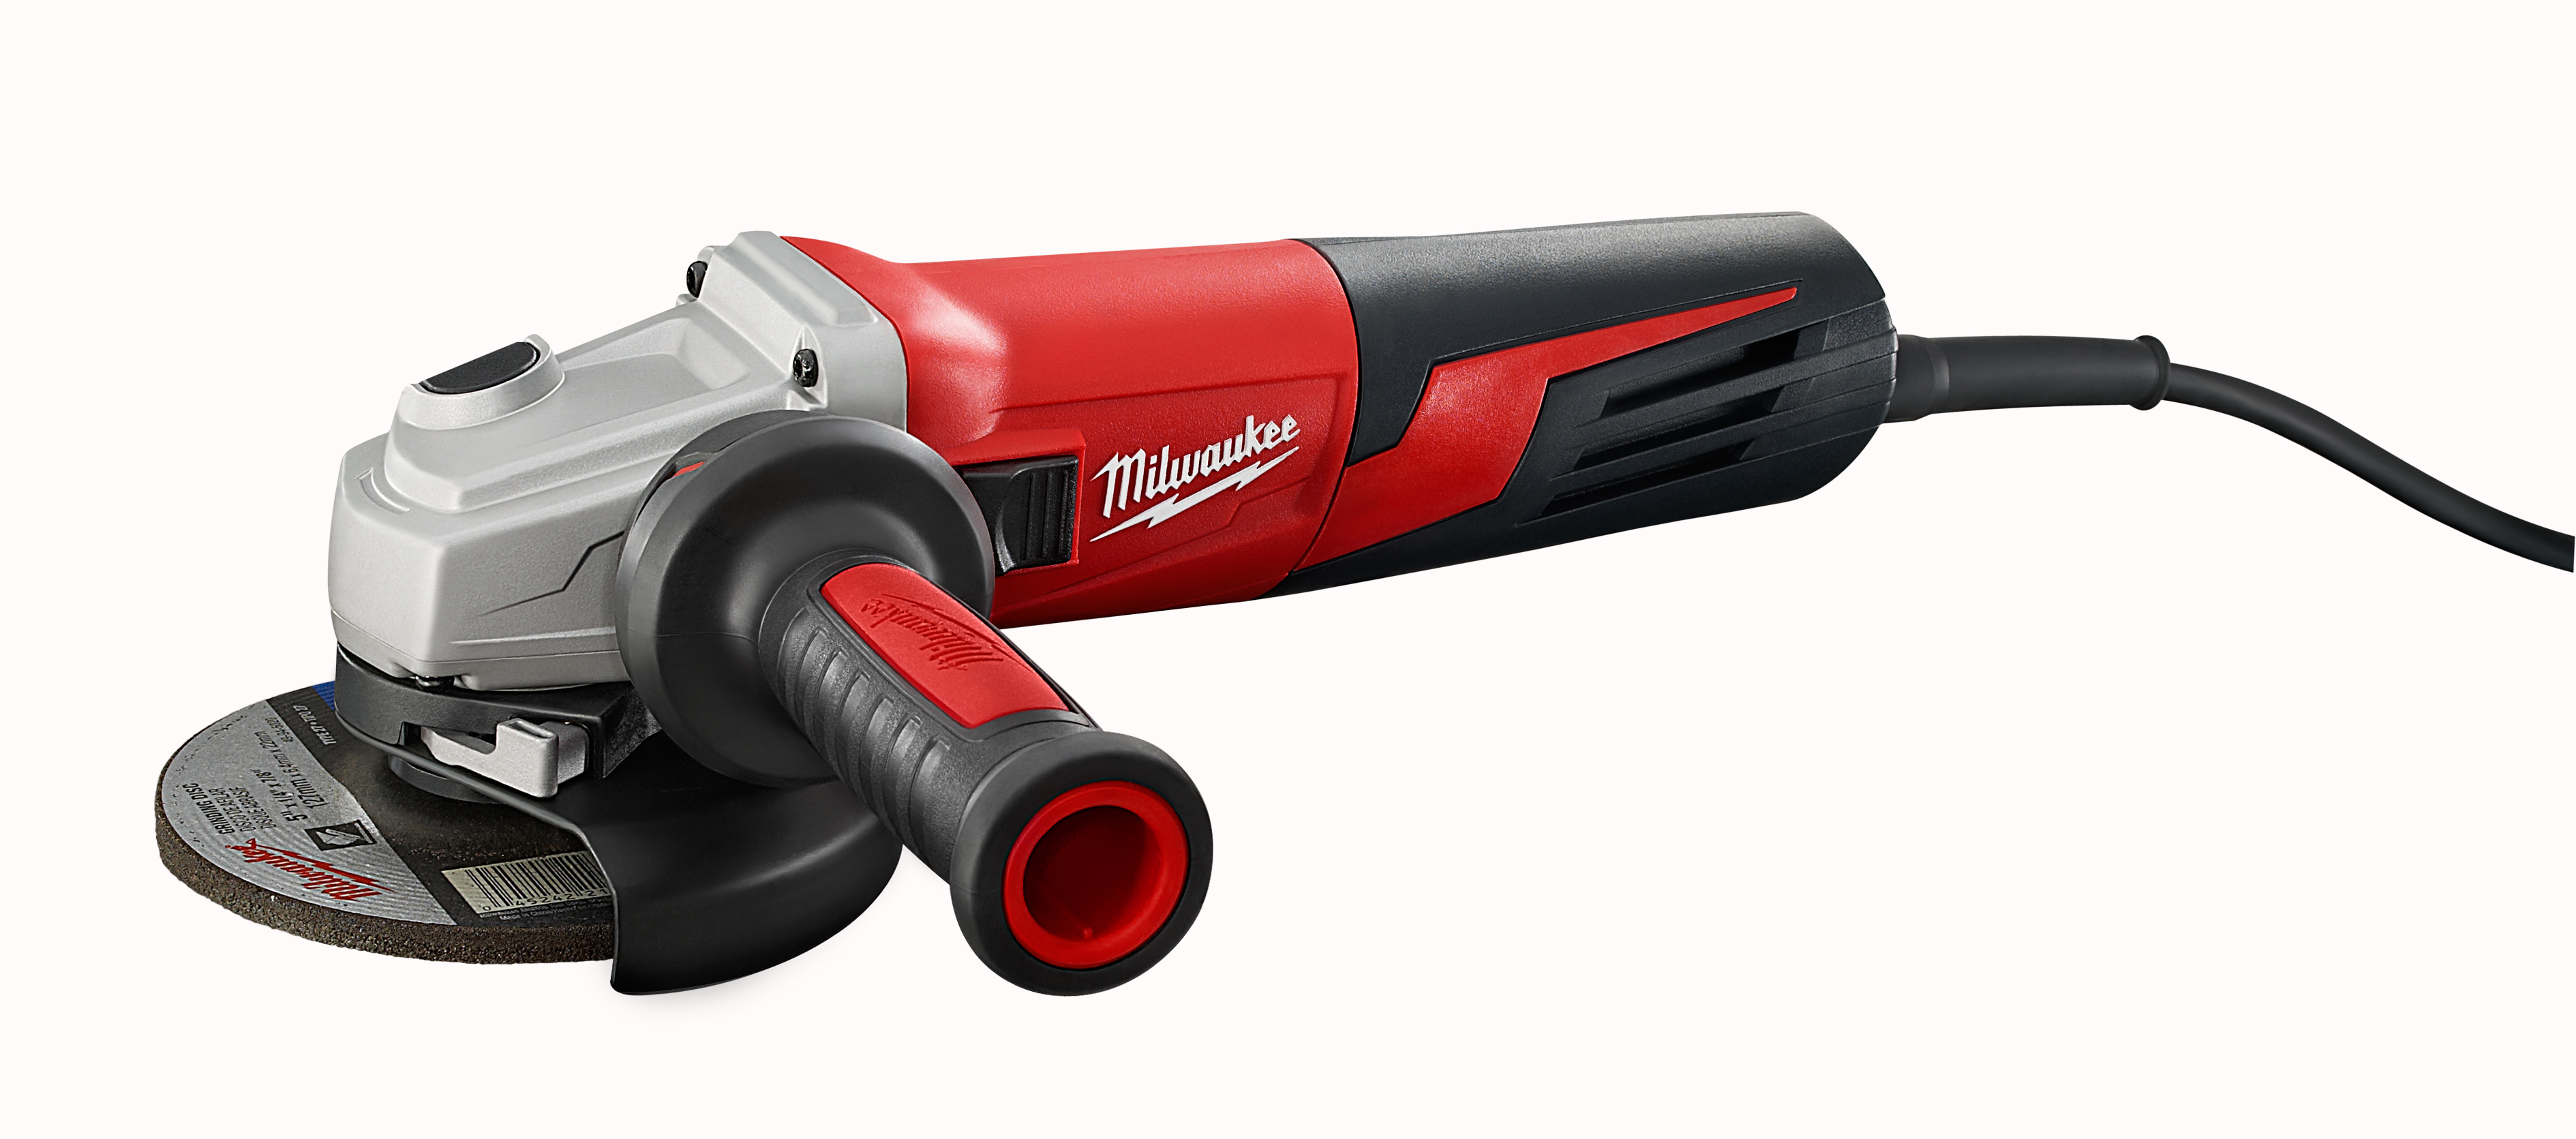 Milwaukee® 6117-33 Double Insulated Small Angle Grinder, 5 in Dia Wheel, 5/8-11 UNC Arbor/Shank, 120 VAC, Black/Red